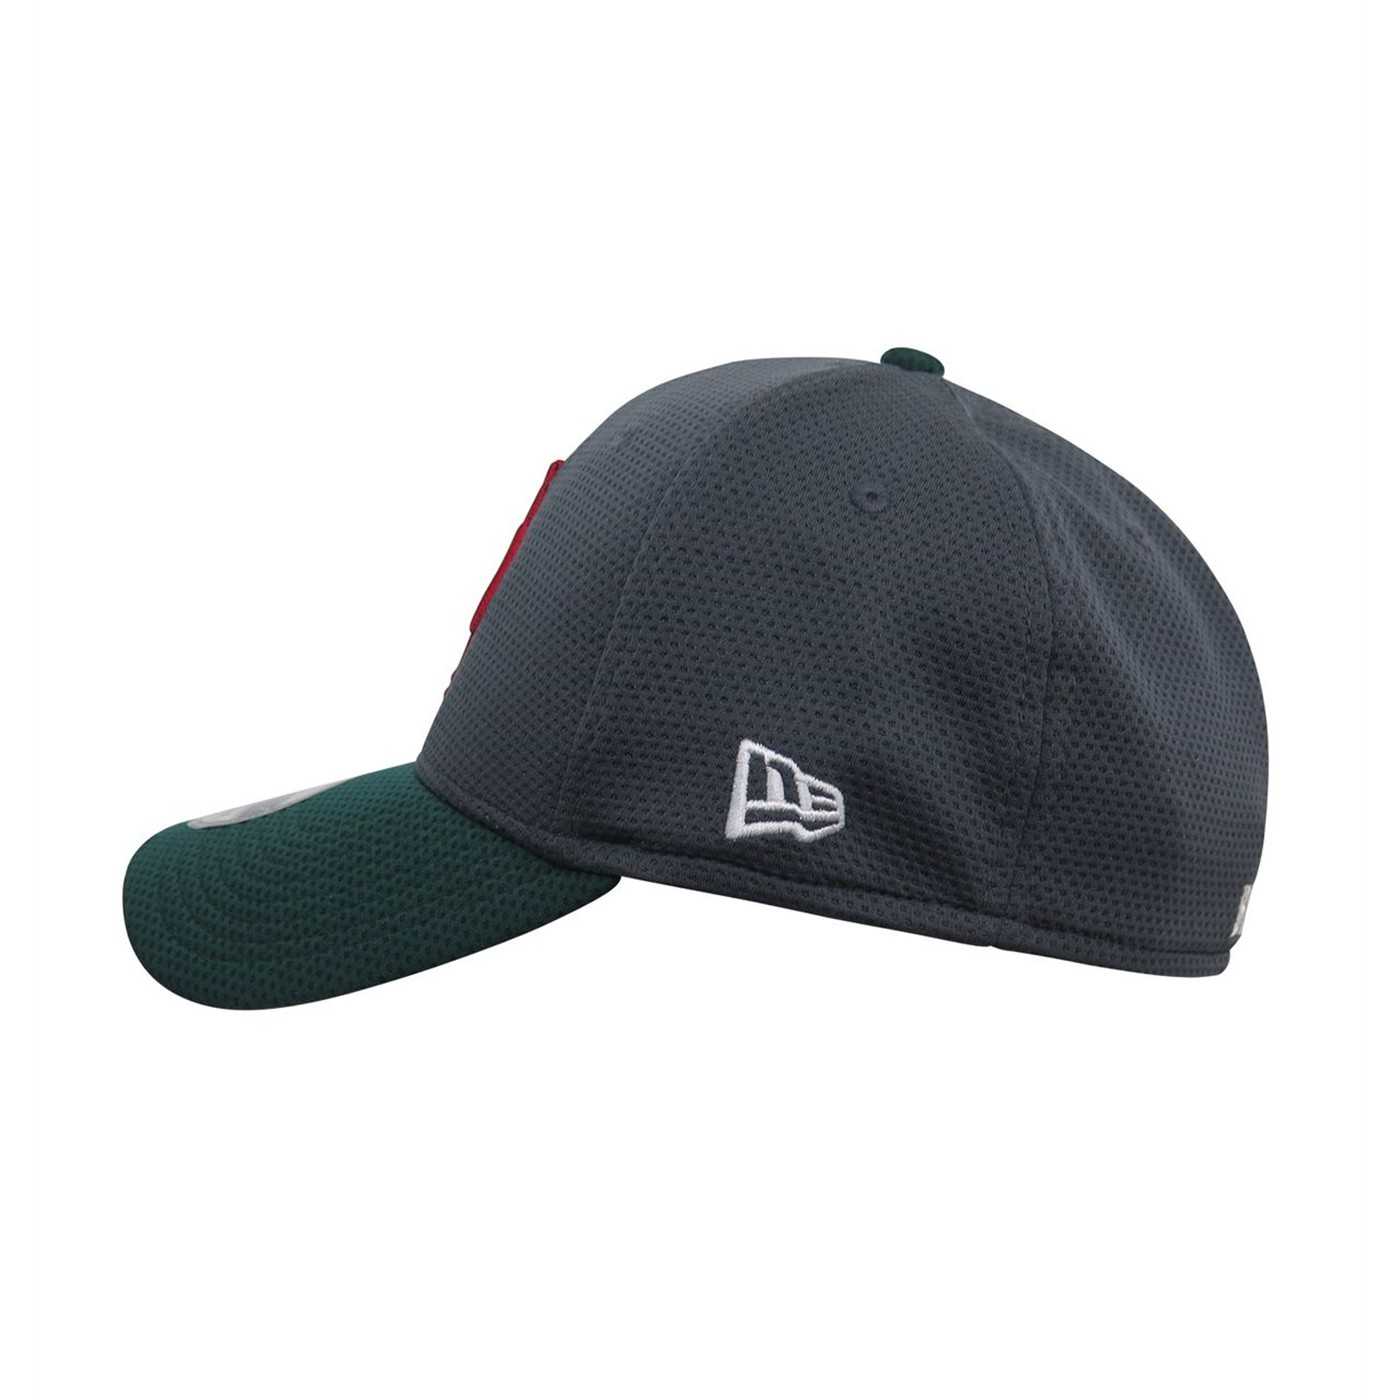 Star Wars Boba Fett Mandalorian 39Thirty Fitted Hat